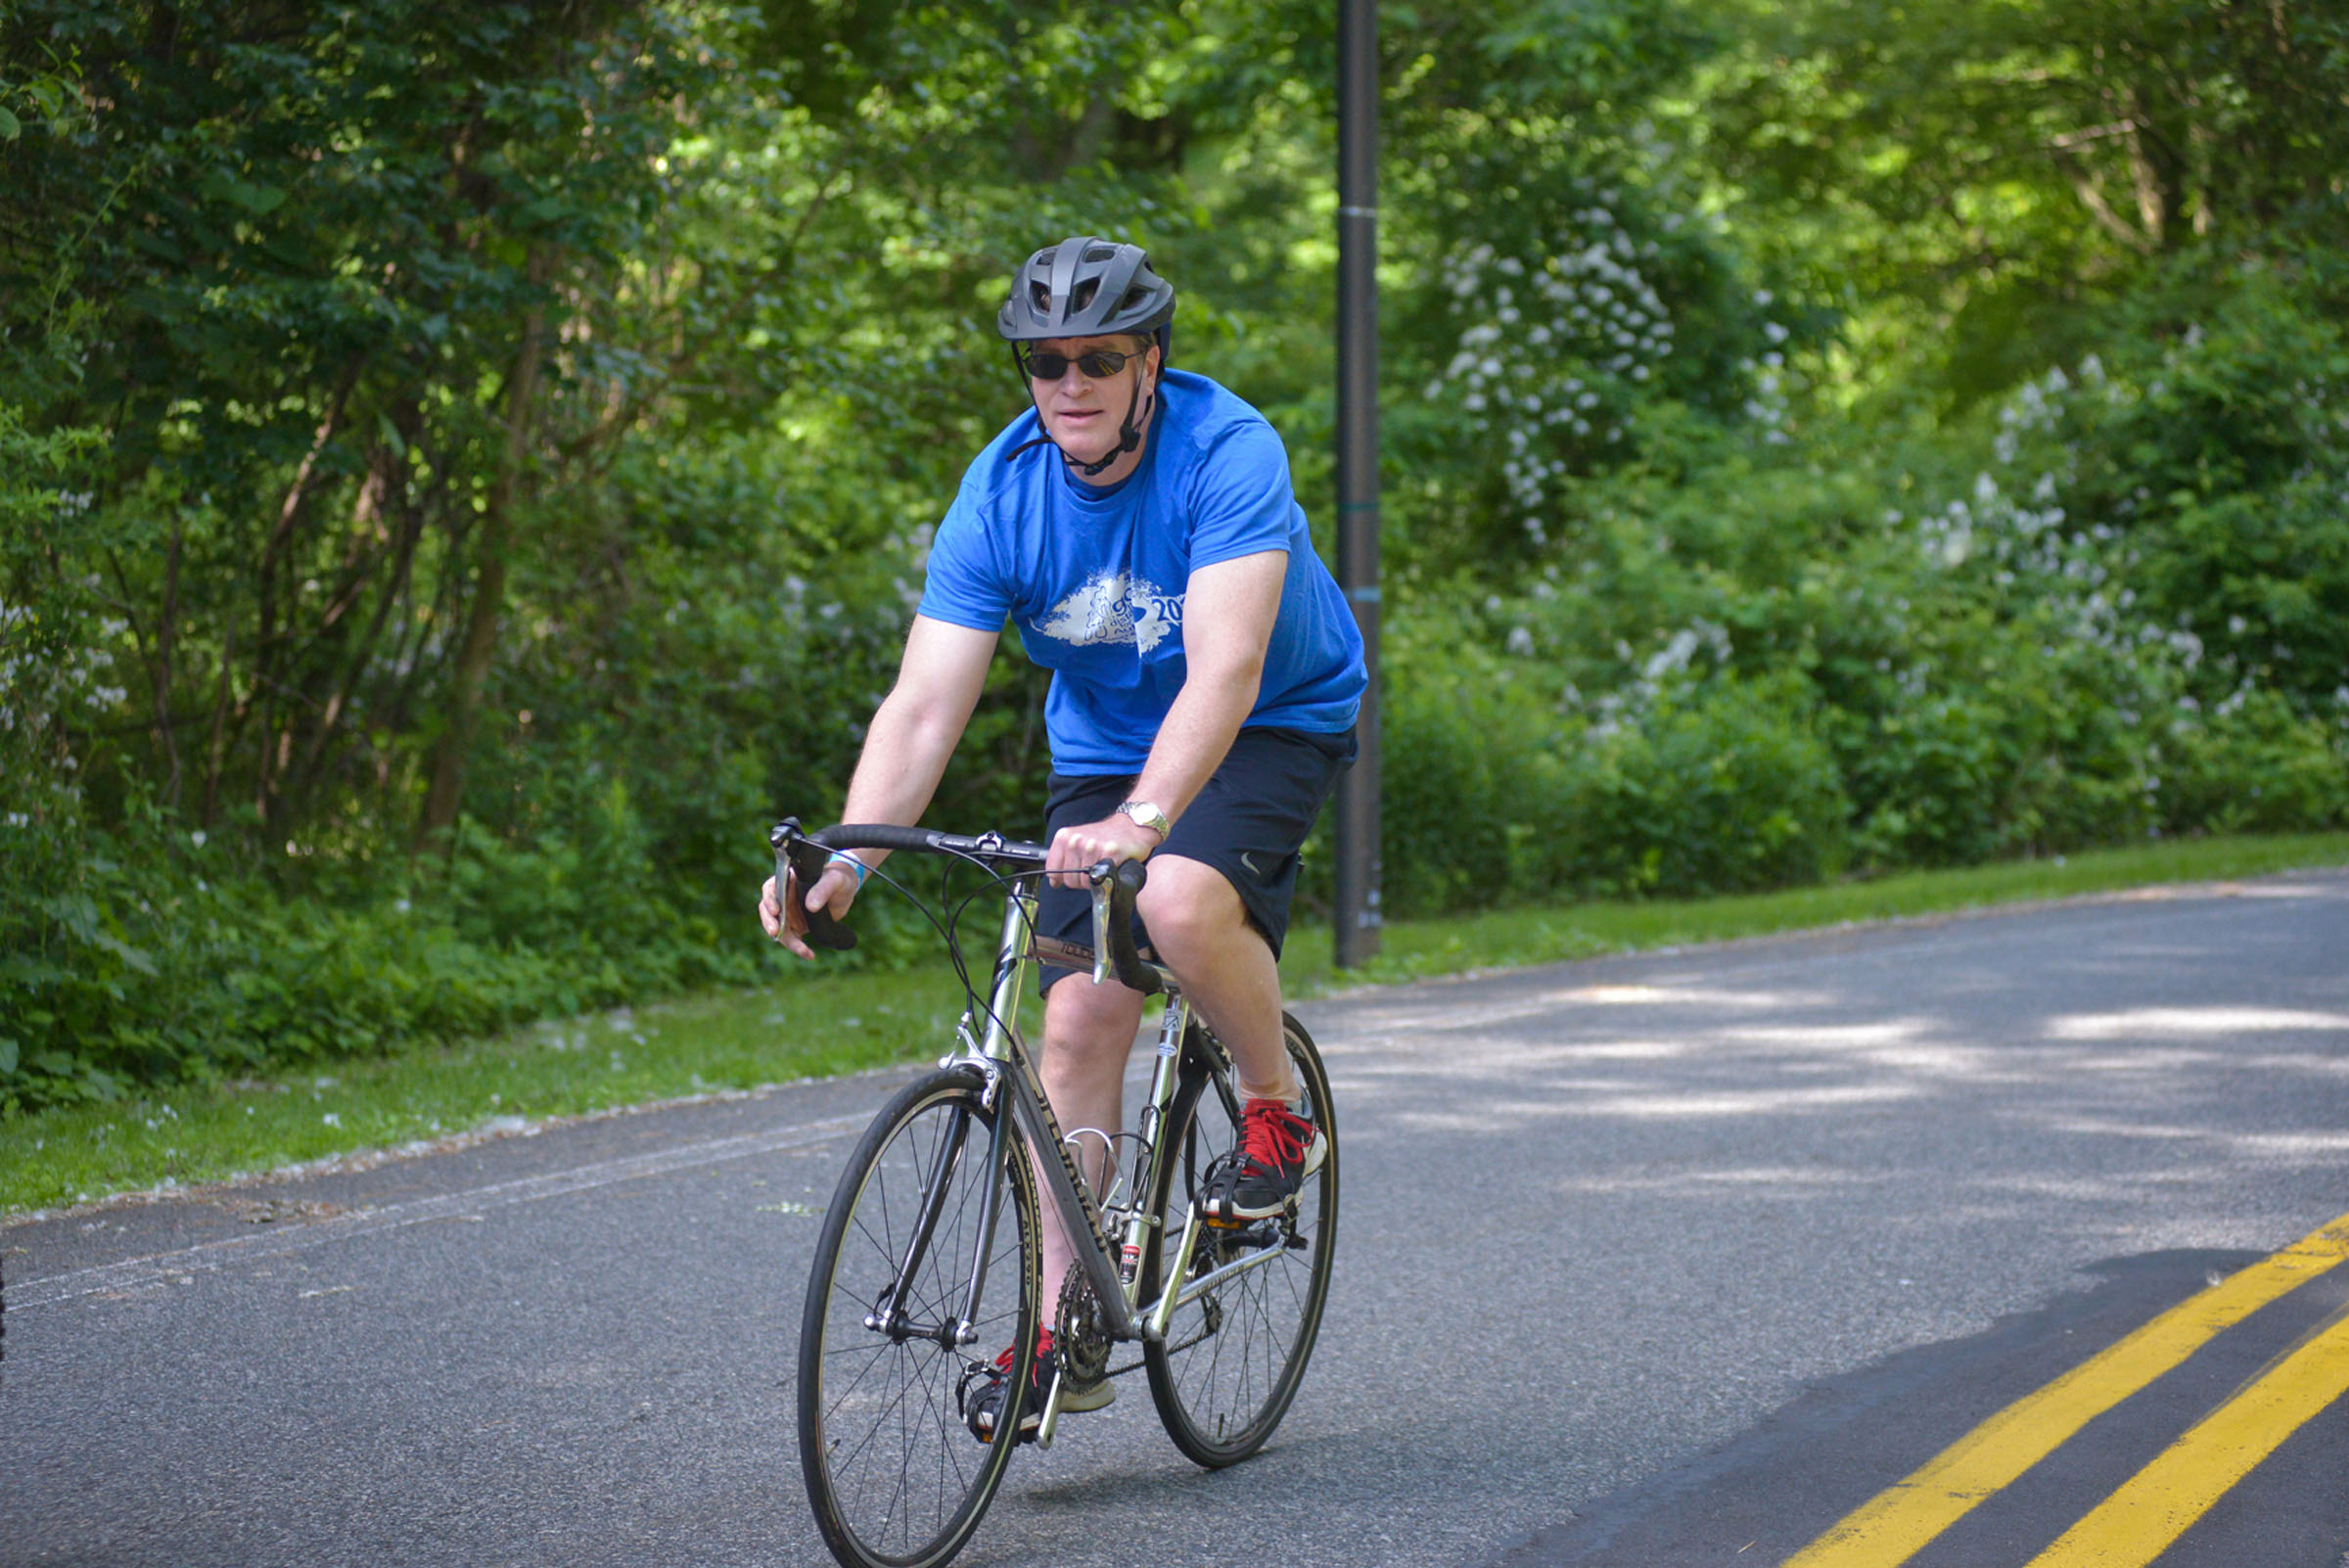 2017-06-04 GTD4A Charity Bike Ride - BCC - Paramus NJ-2087.jpg